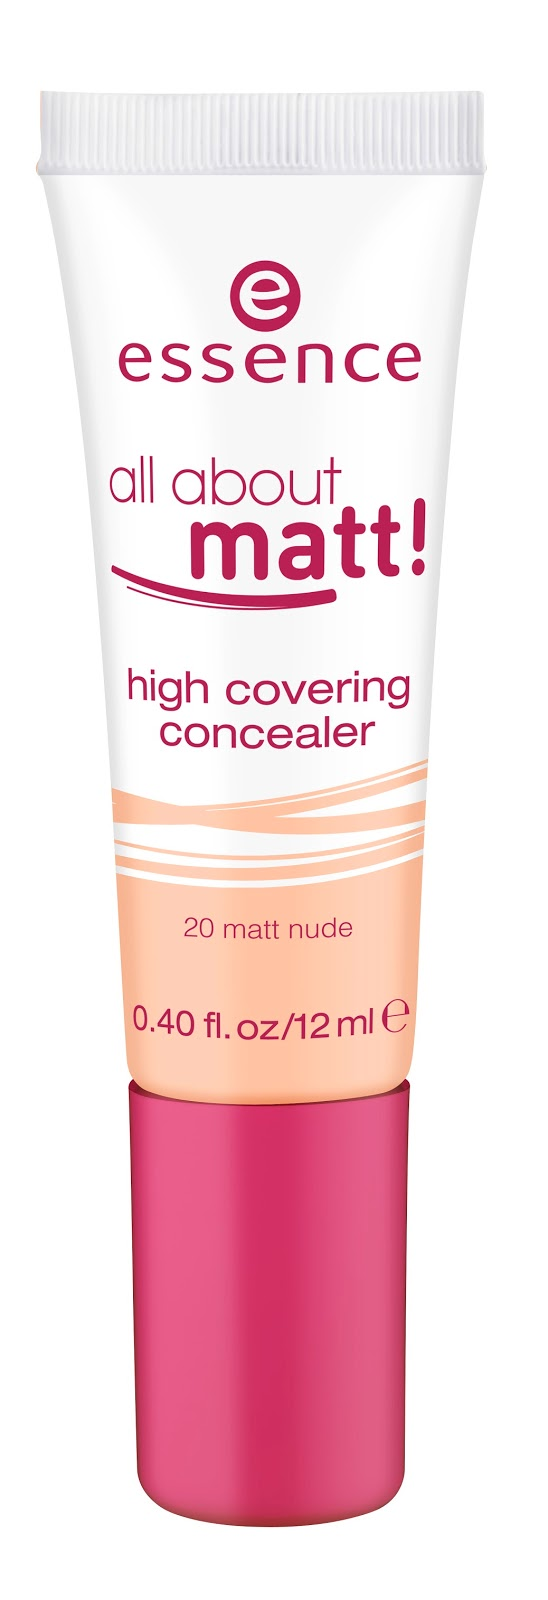 Essence all about matt! high covering concealer